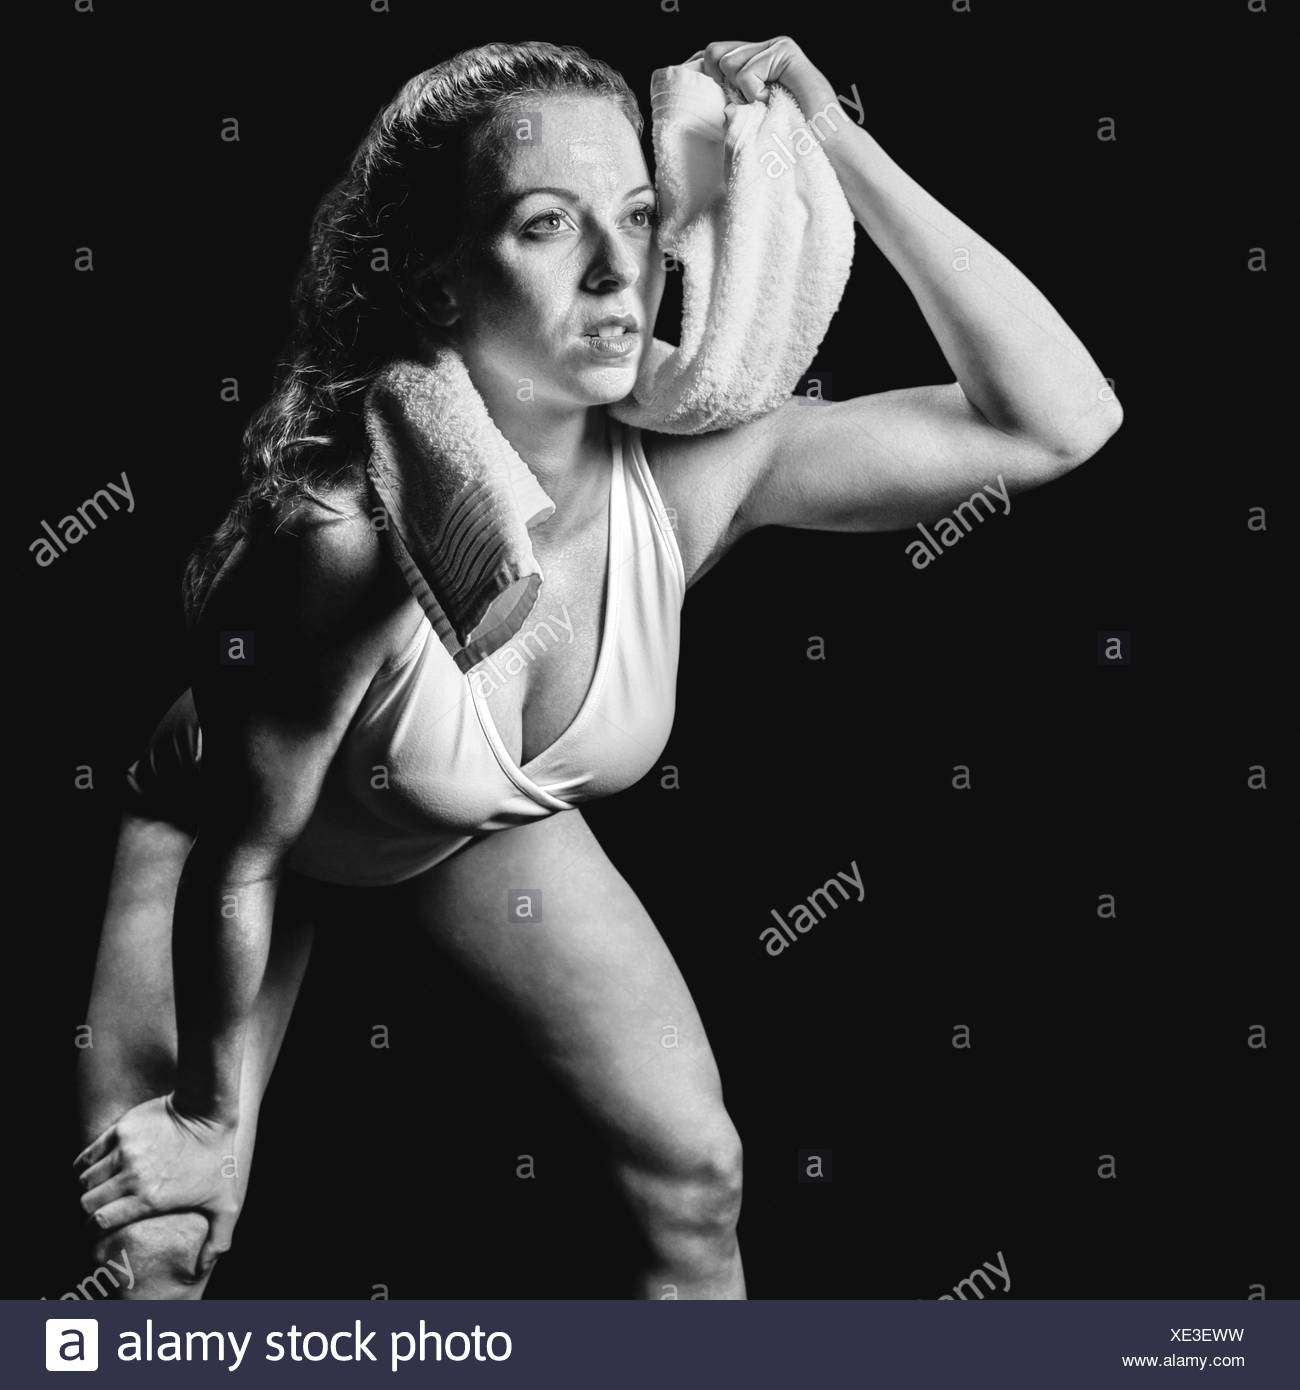 Composite image of athlete wiping sweat with towel while looking up Stock Photo